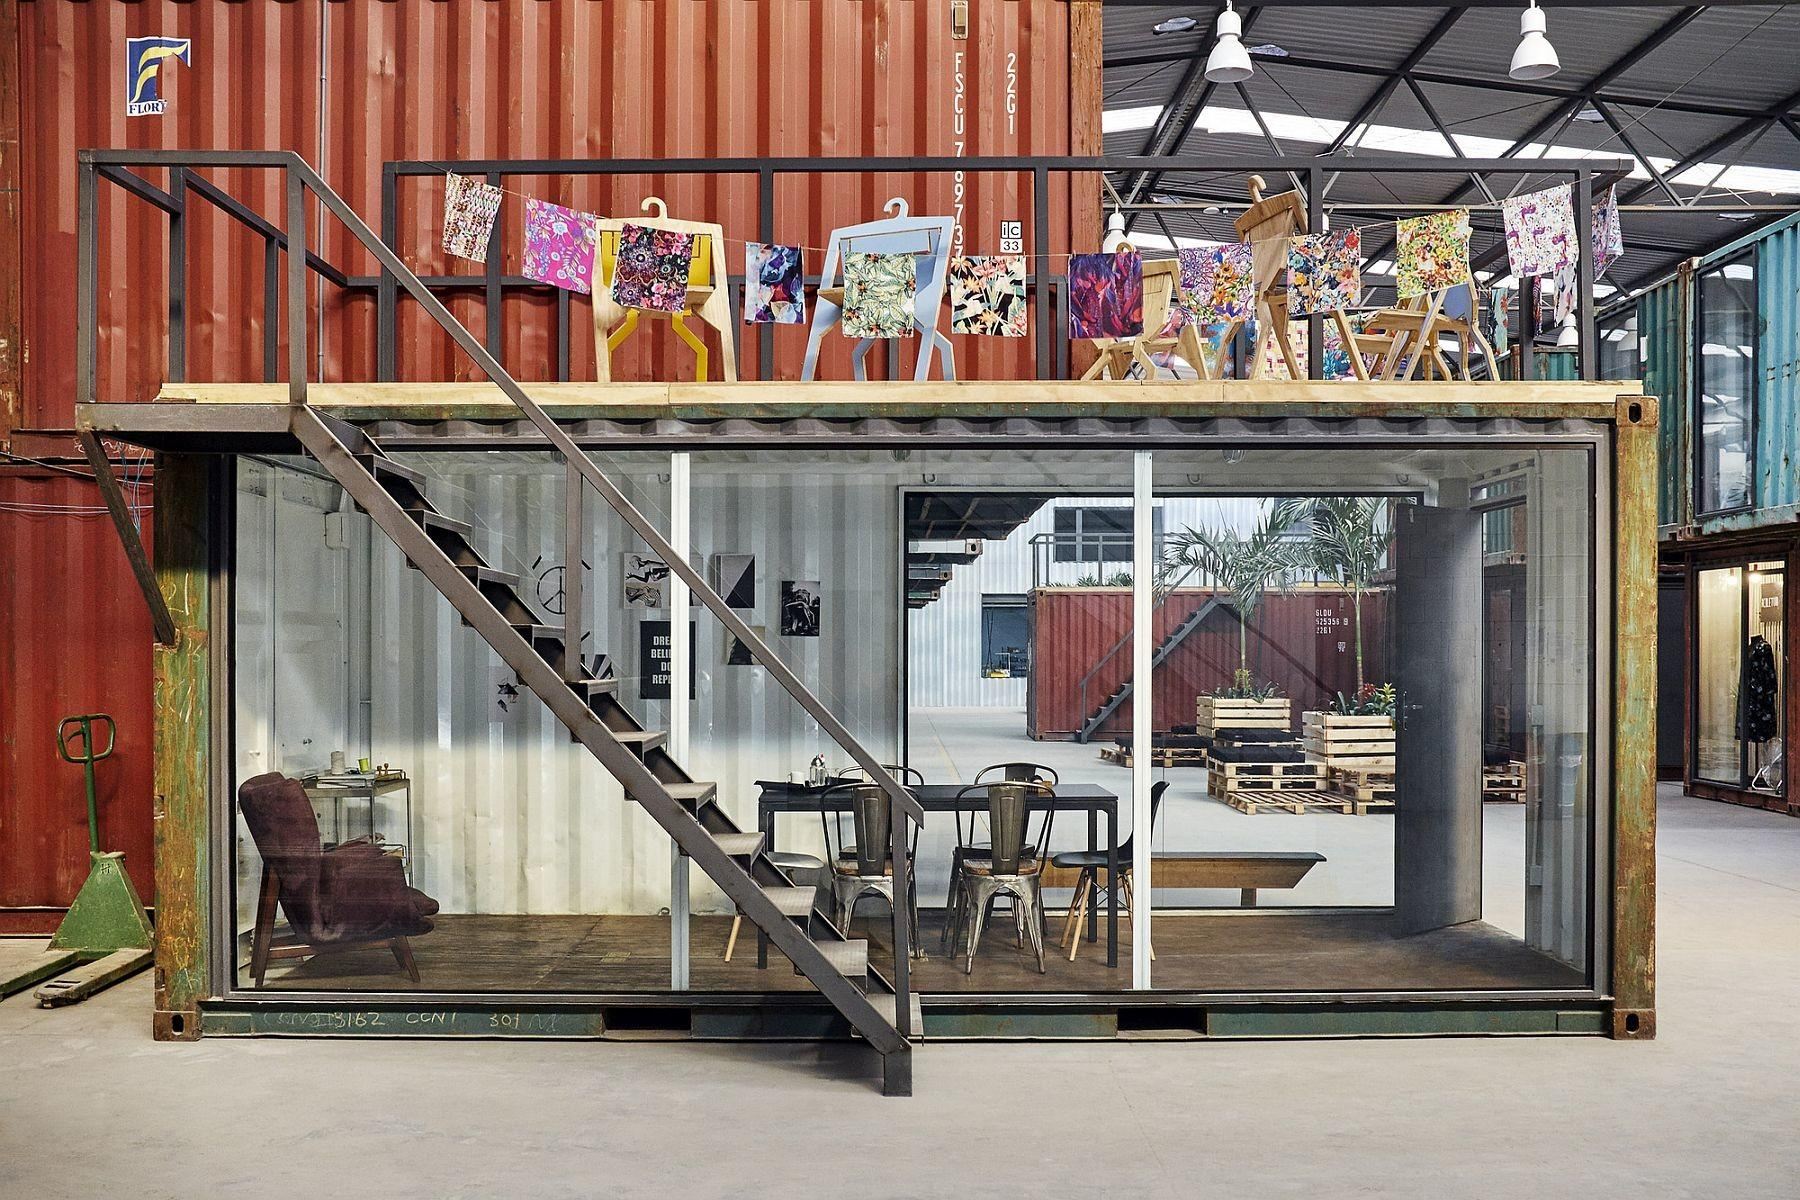 Repurposed Containers Inside Warehouse Reshape Rio